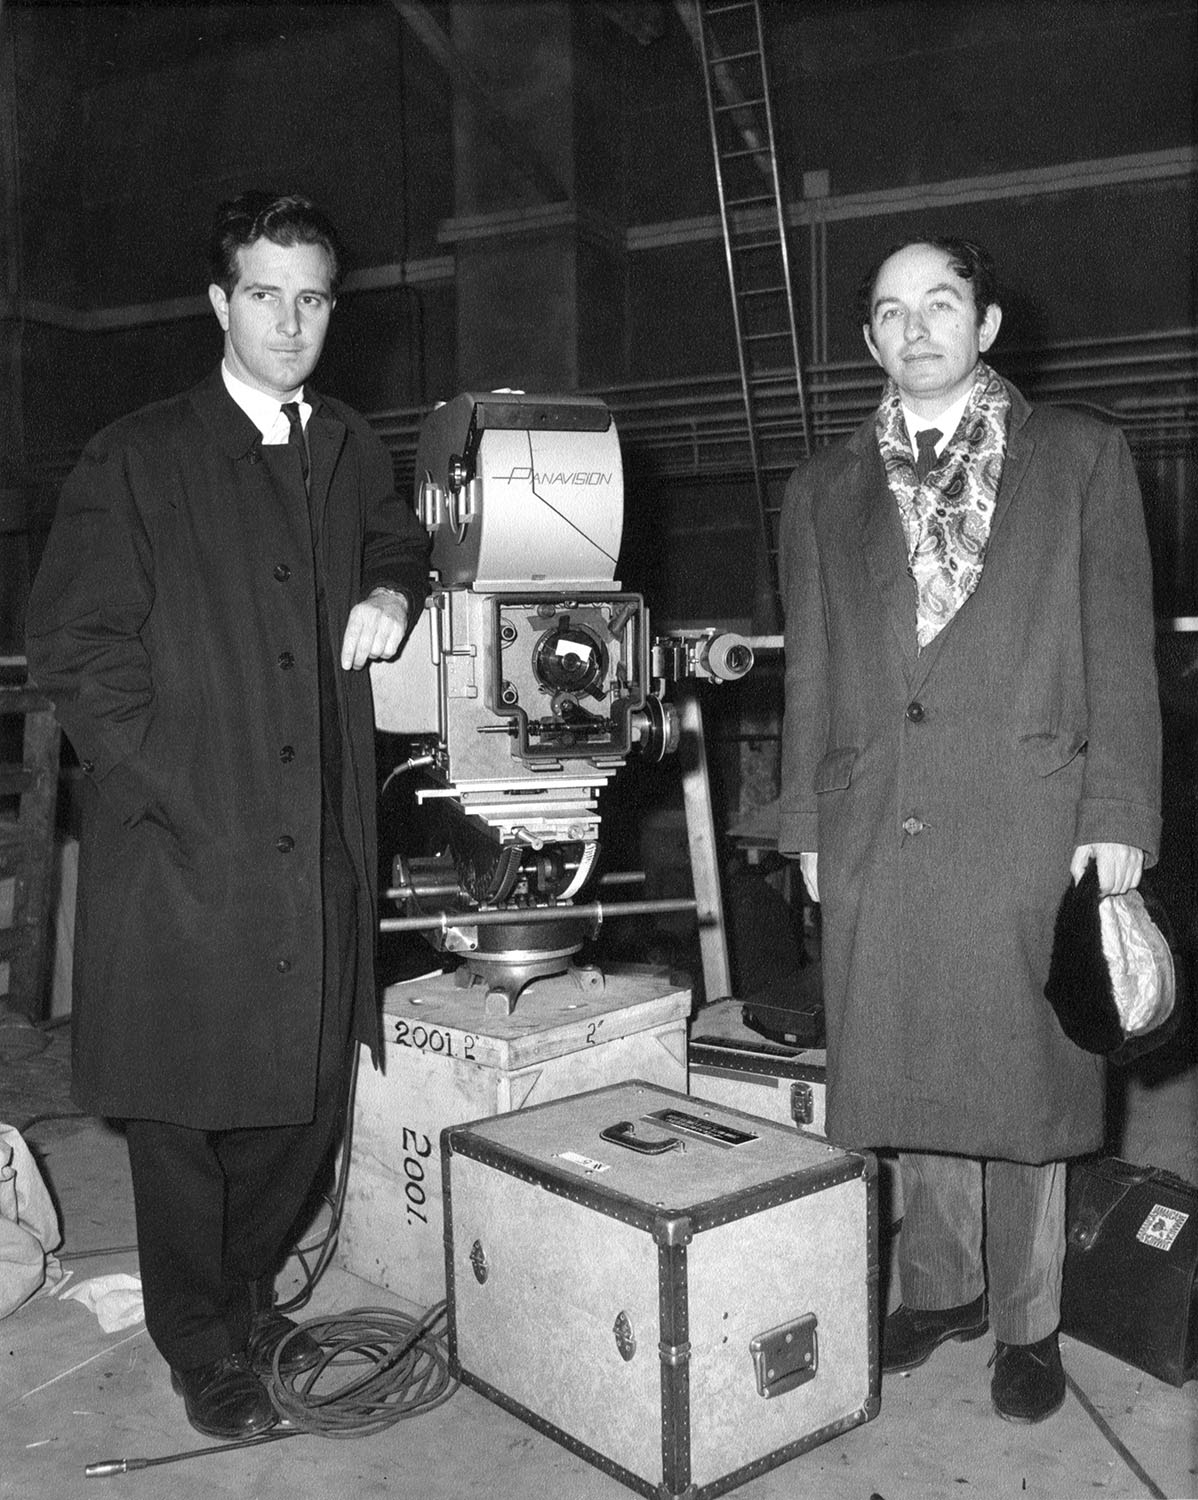 Jack Good (right) at Hawk Films Ltd., 1966, as adviser on Stanley Kubrick's 2001: A Space Odyssey